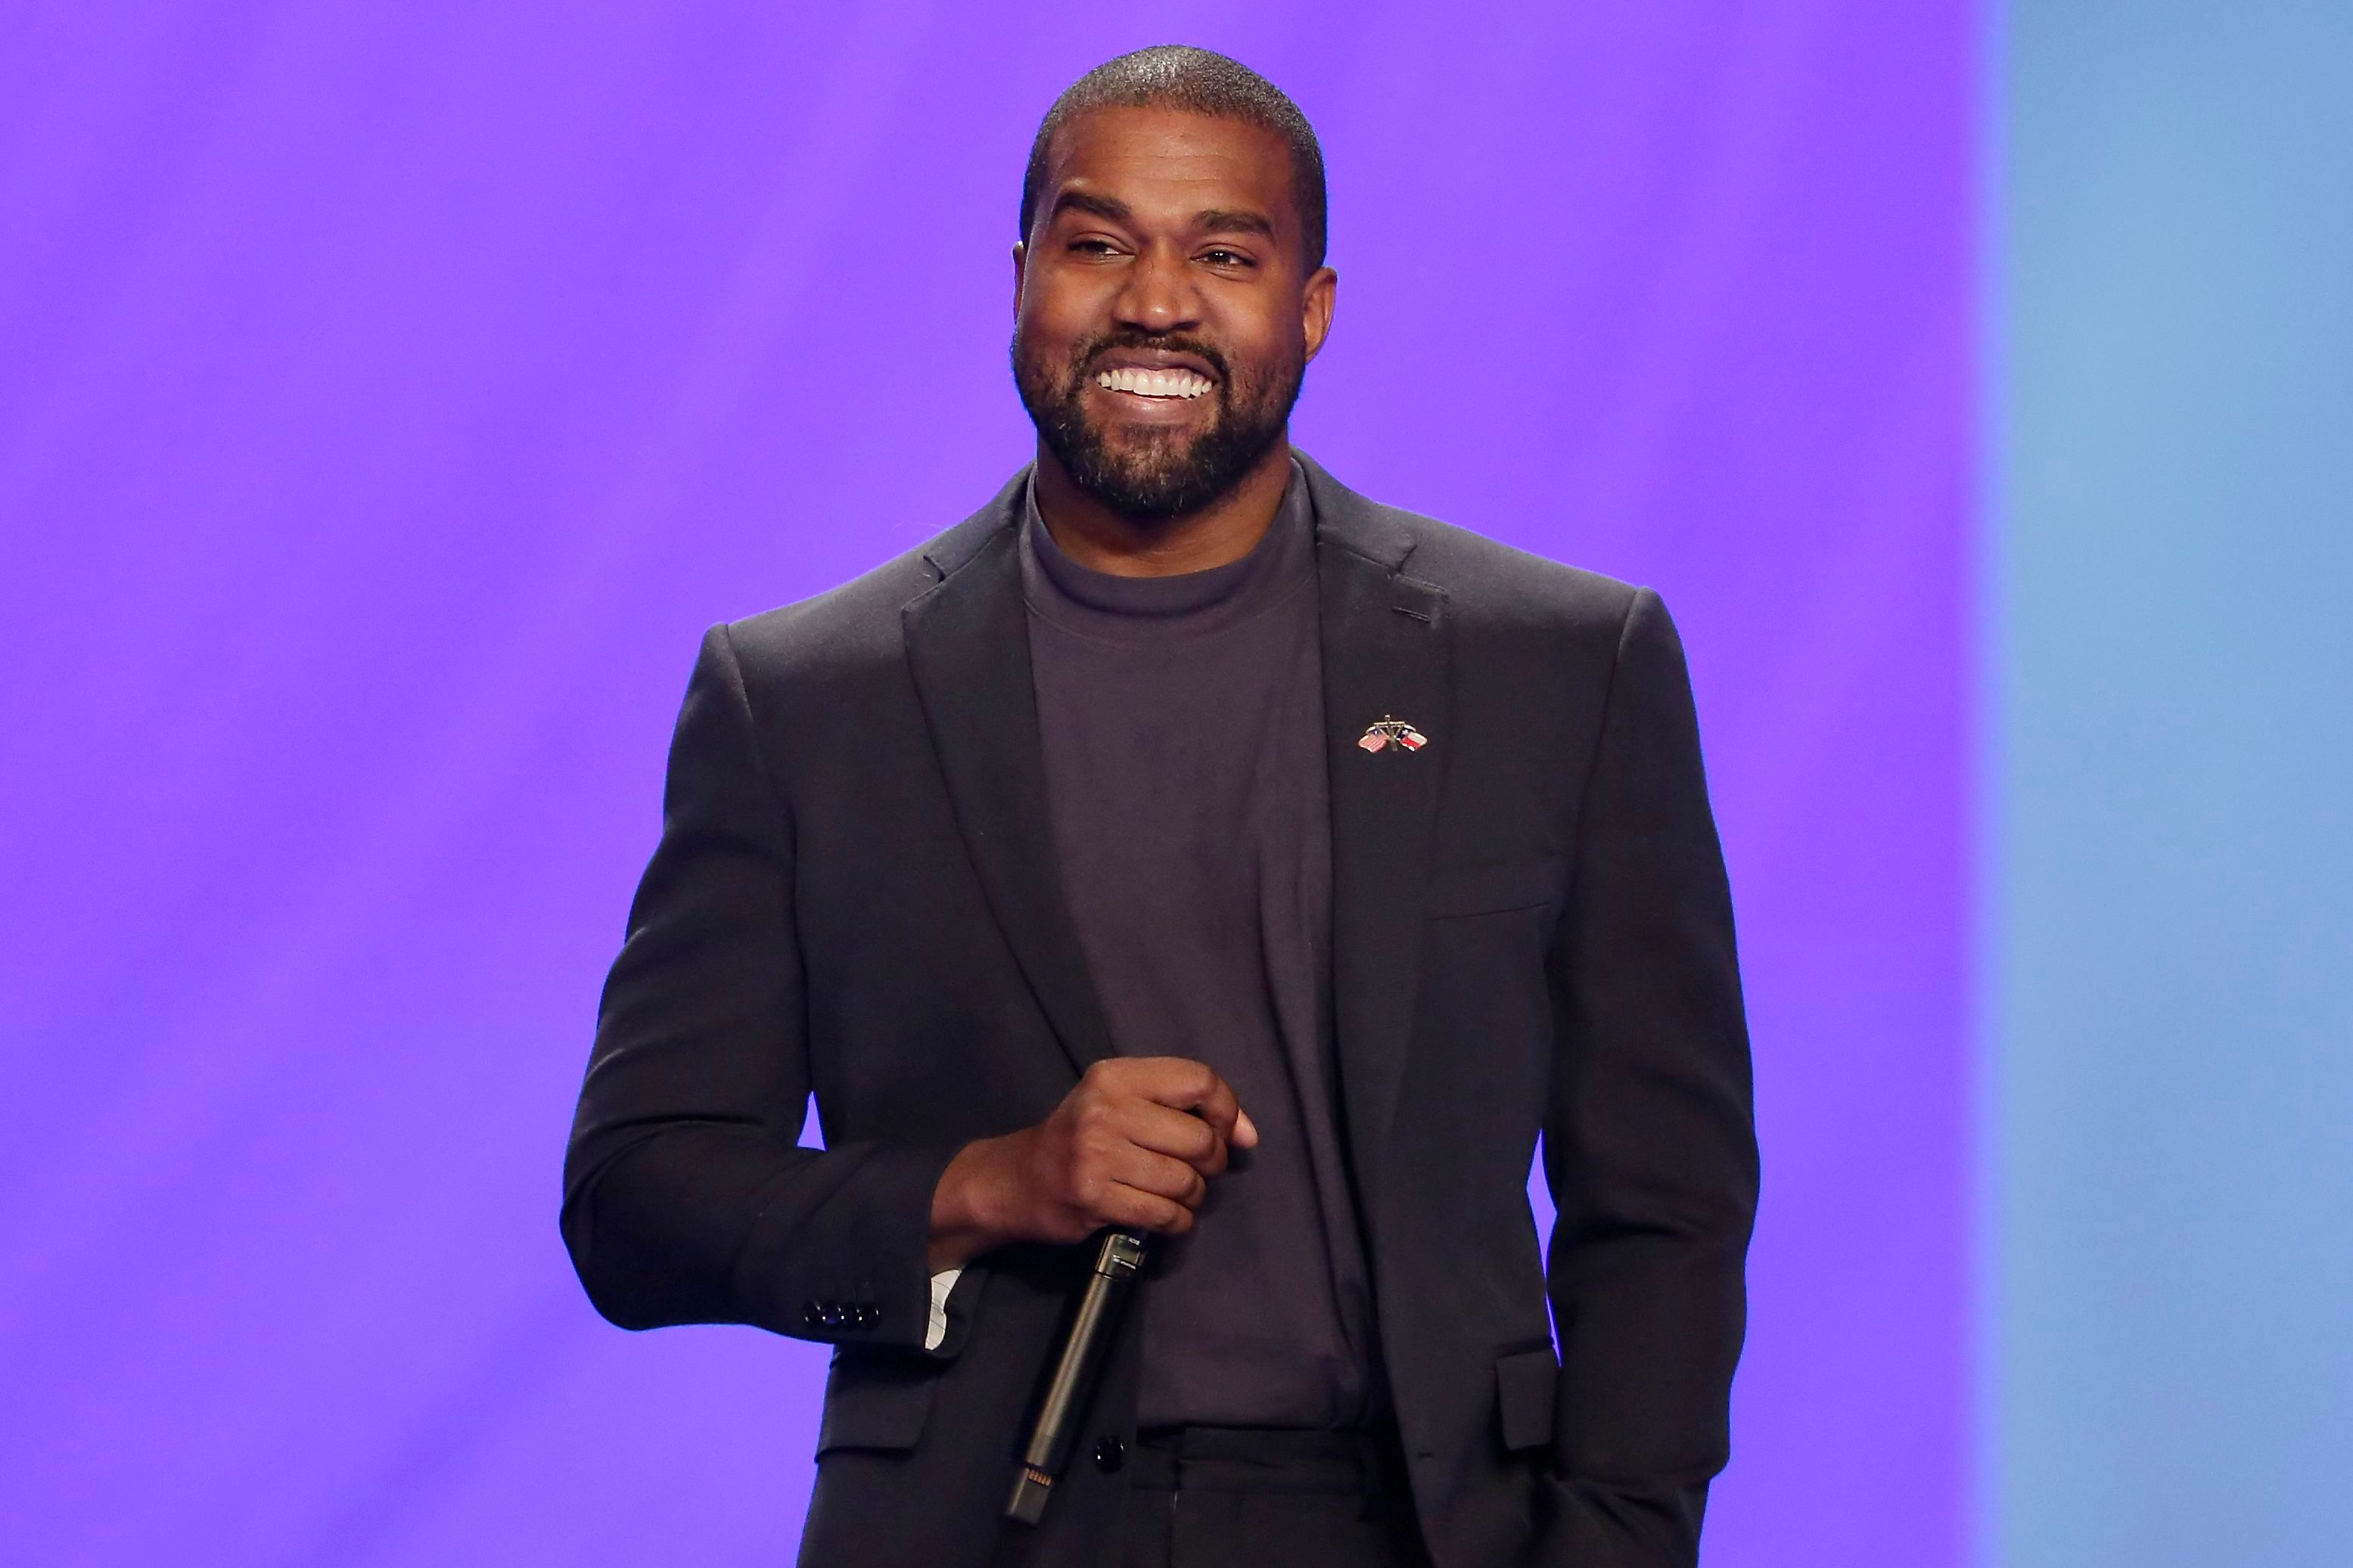 Kanye West answers questions from Sr. pastor Joel Osteen during the 11 am service at Lakewood Church, in HoustonPeople Kanye West Joel Osteen, Houston, USA - 17 Nov 2019